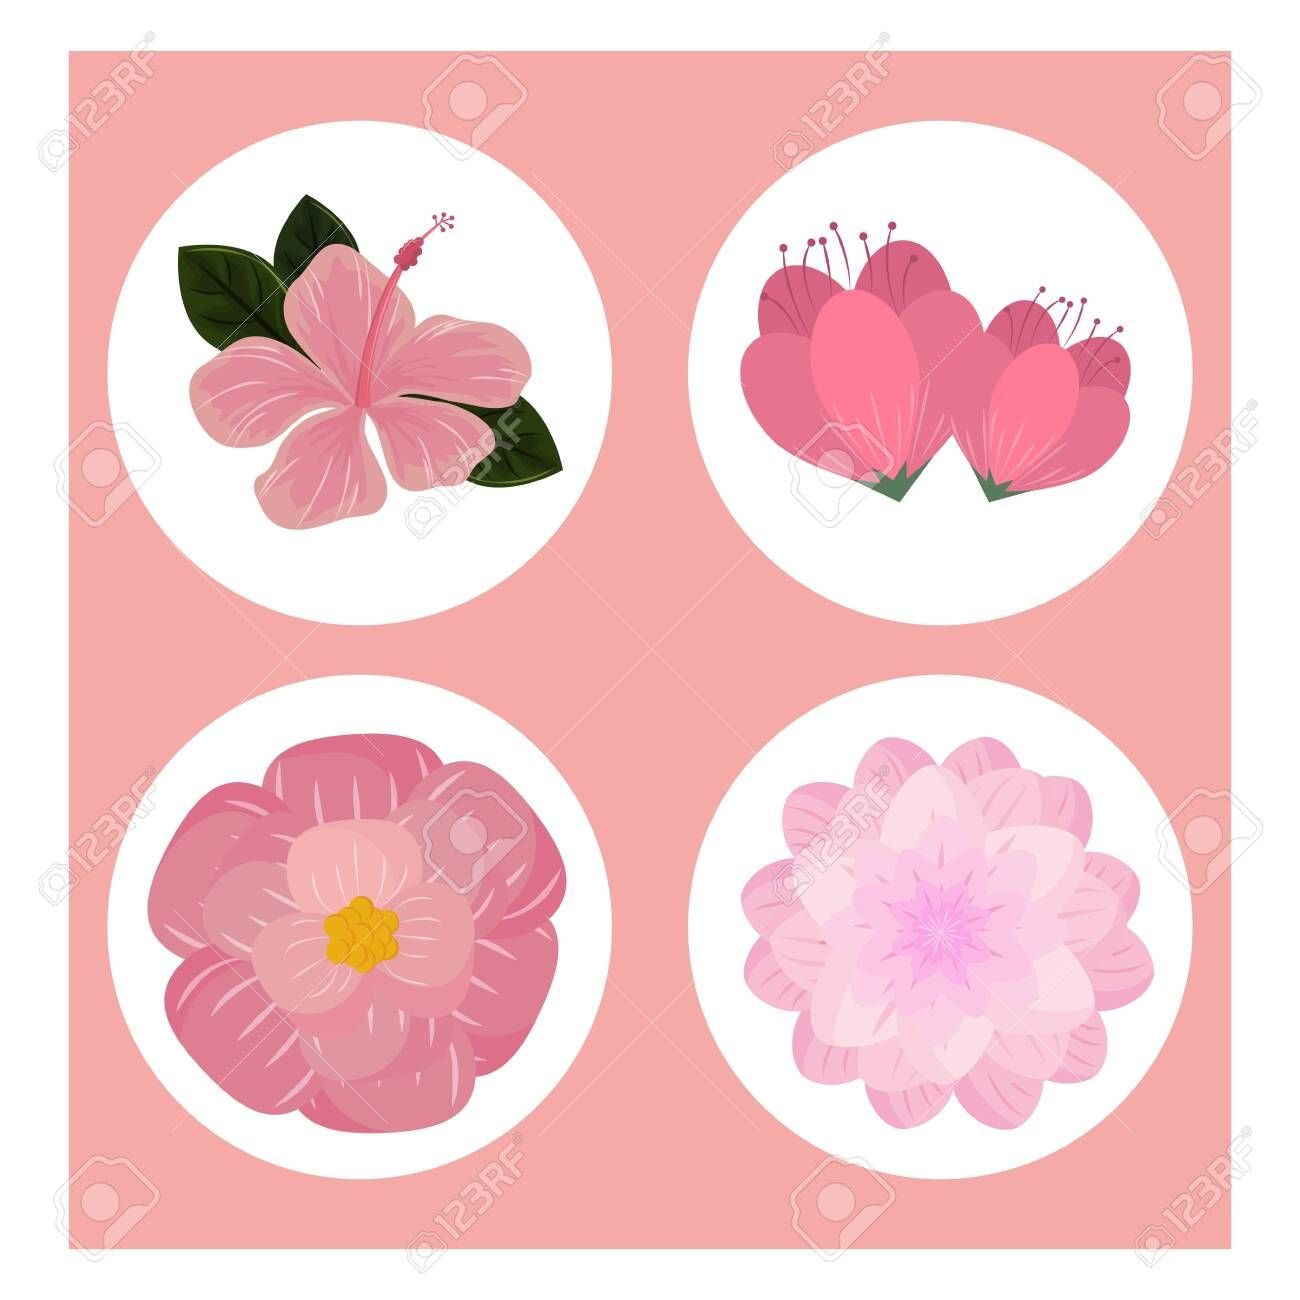 Flowers round icons set over pink background vector illustration graphic design